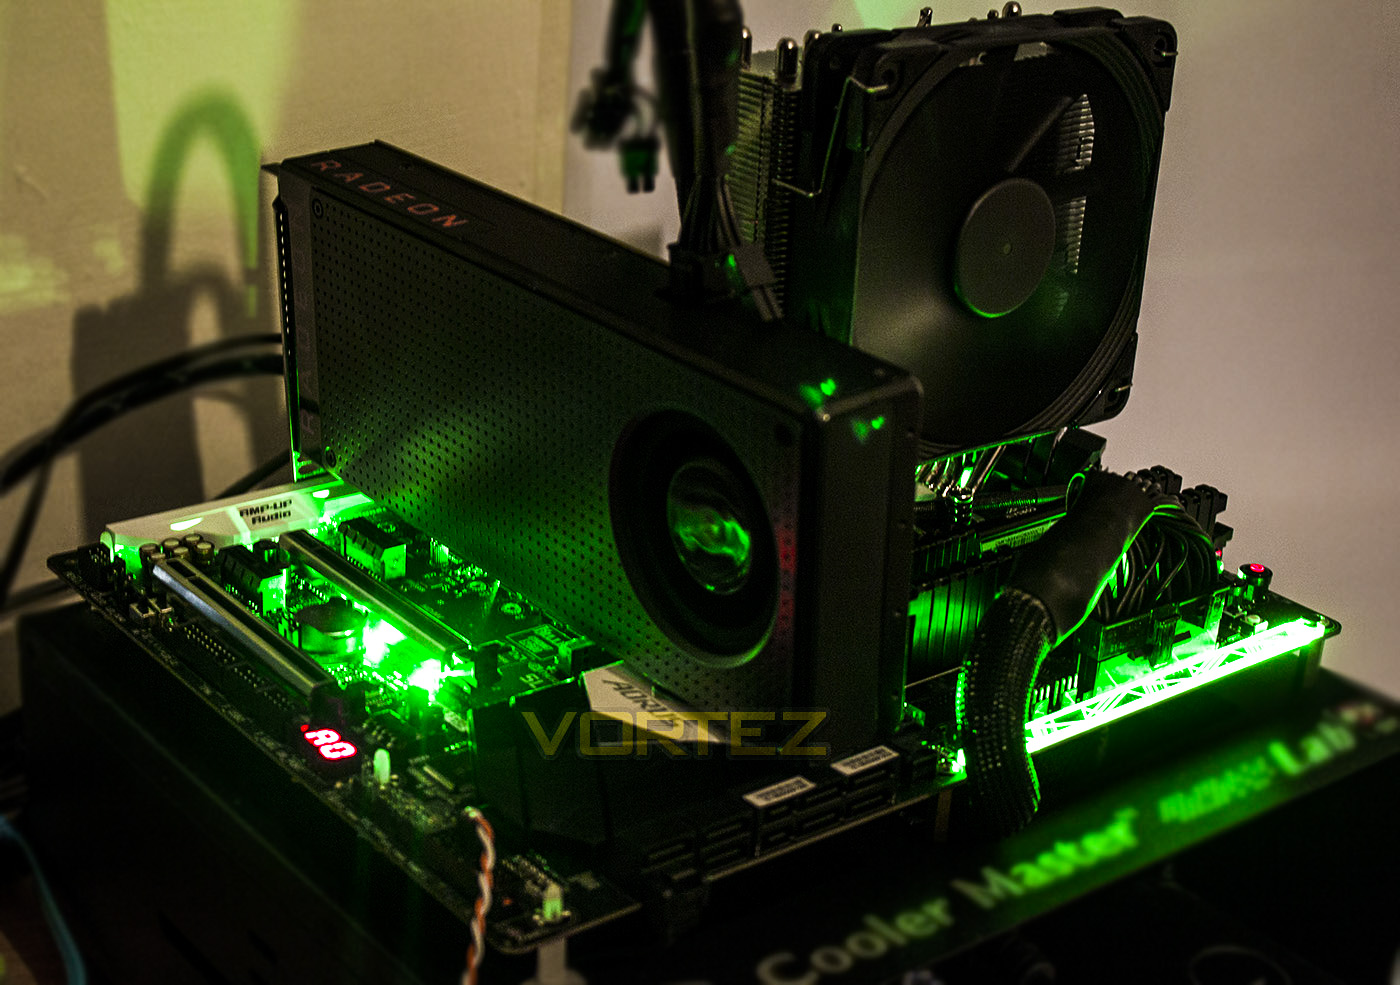 Gigabyte Aorus Ga Ax370 Gaming 5 Review Closer Look The Lighting Is Customisable With Various Effects Rgb Fusion App Which Also Available As An Android Apple Mobile